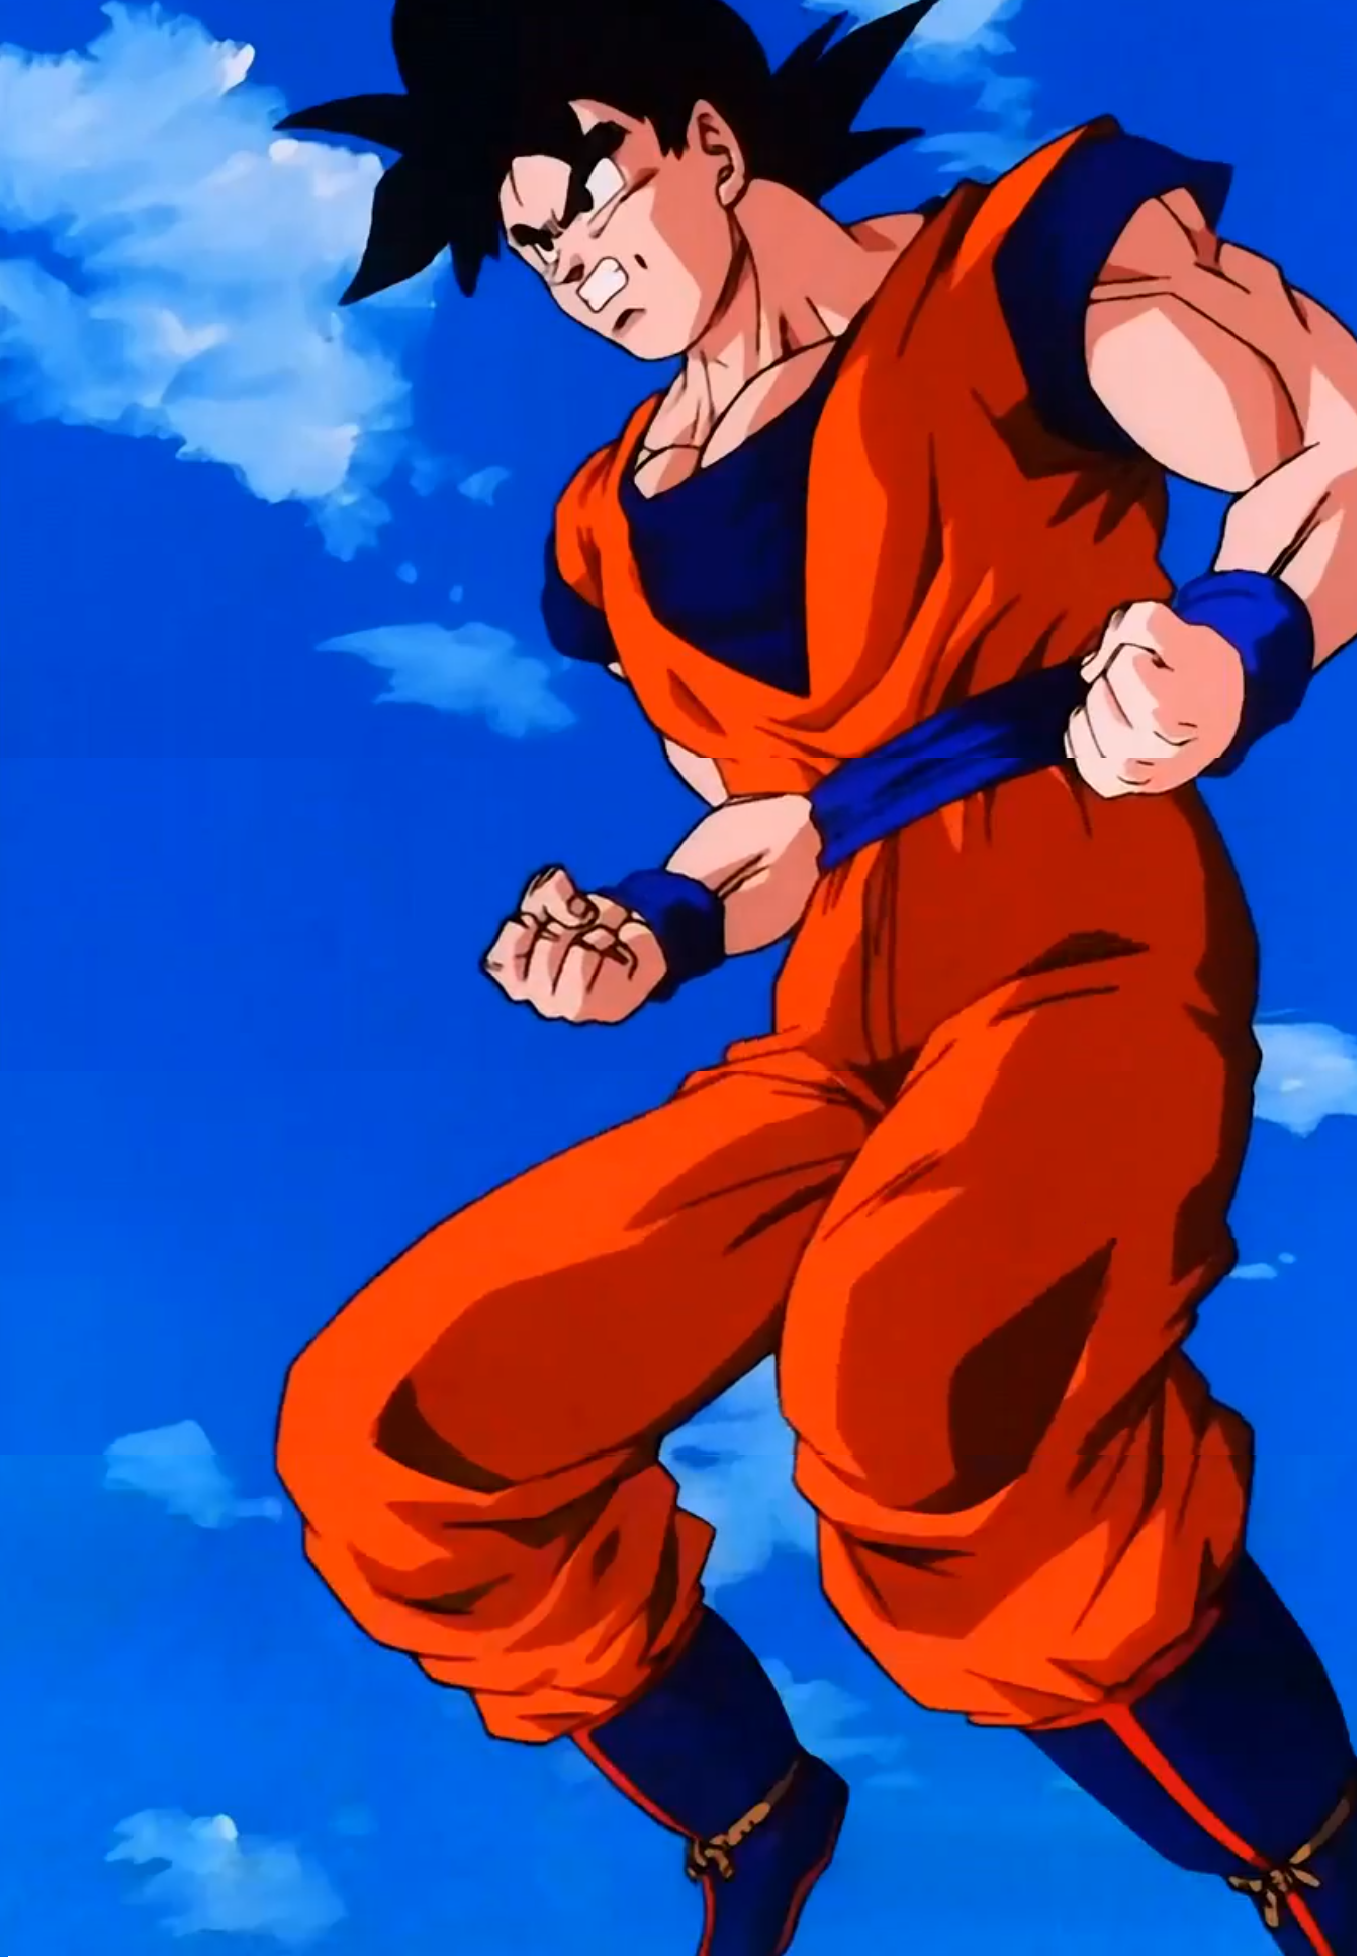 Who has the best physique kanzenshuu - Images dragon ball z ...